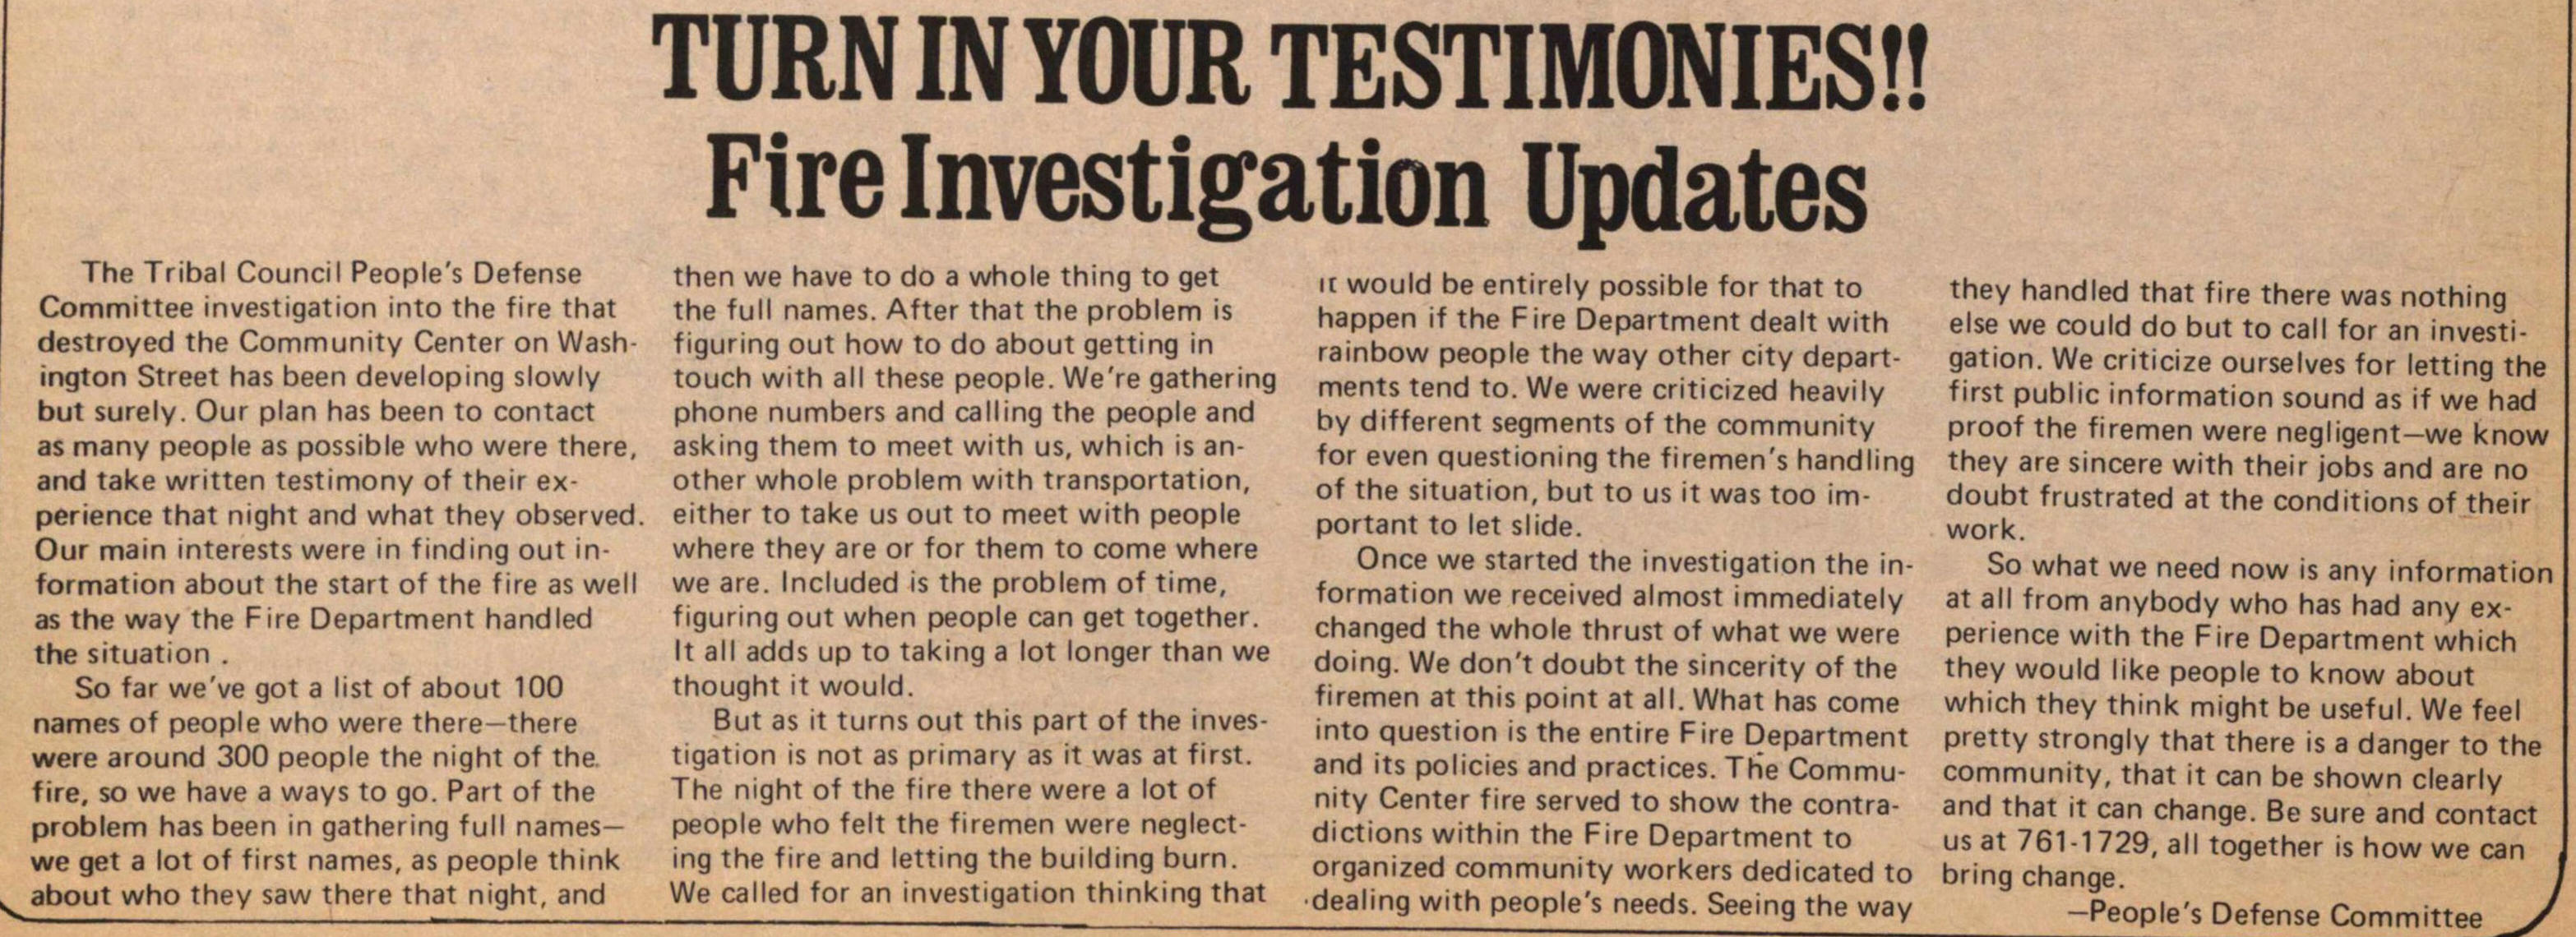 Turn In Your Testimonies!! Fire Investigation Updates image